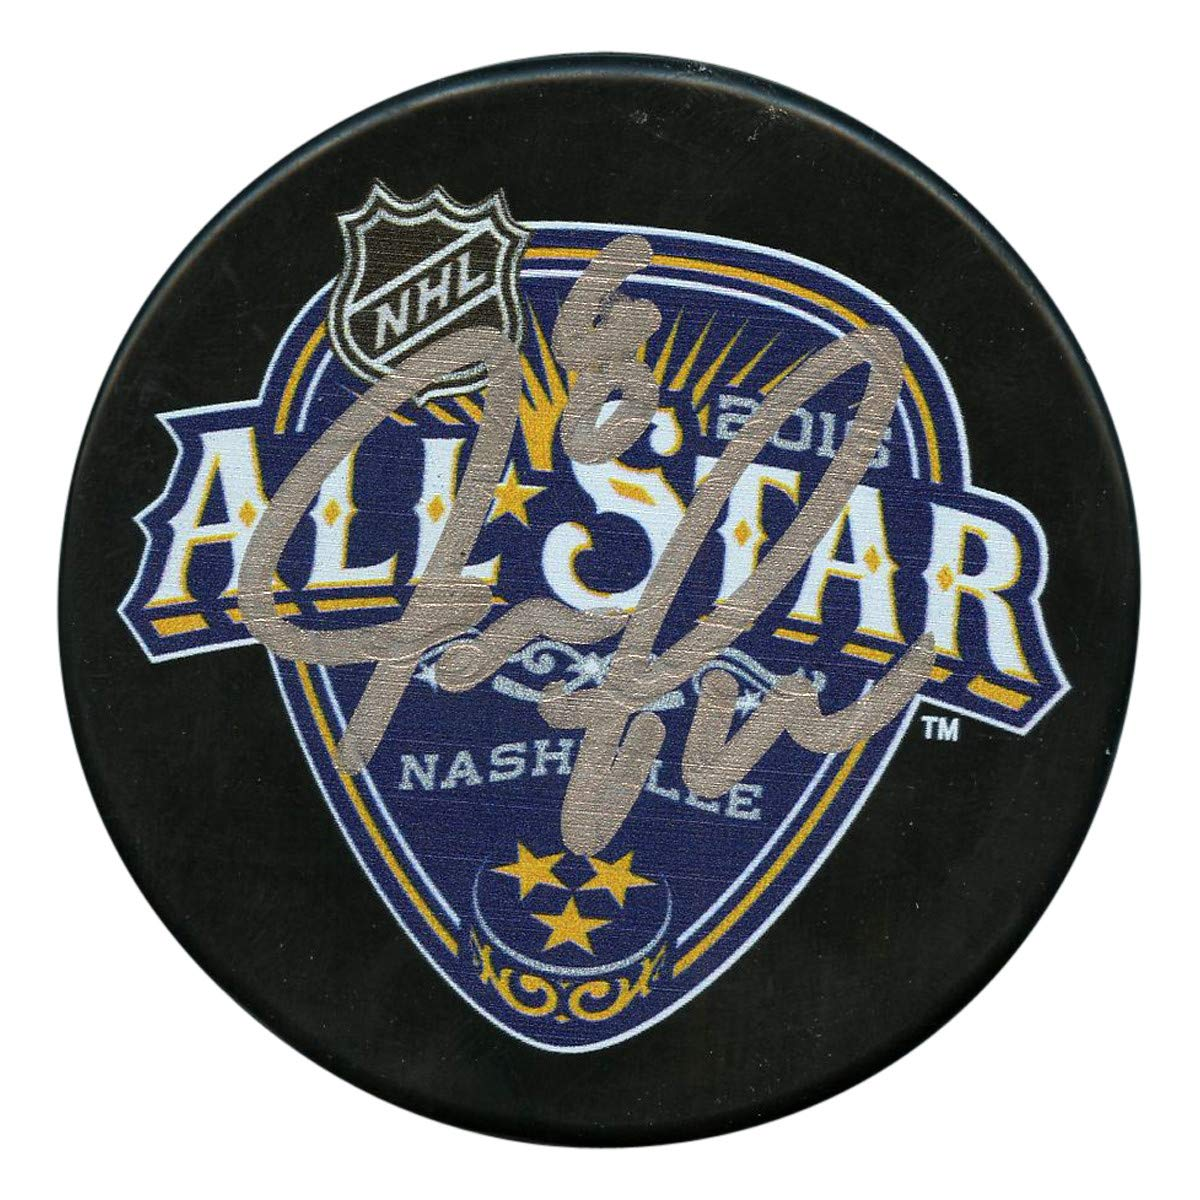 Joe Pavelski Autographed Signed San Jose Sharks 2016 NHL All Star Game Puck - Certified Authentic